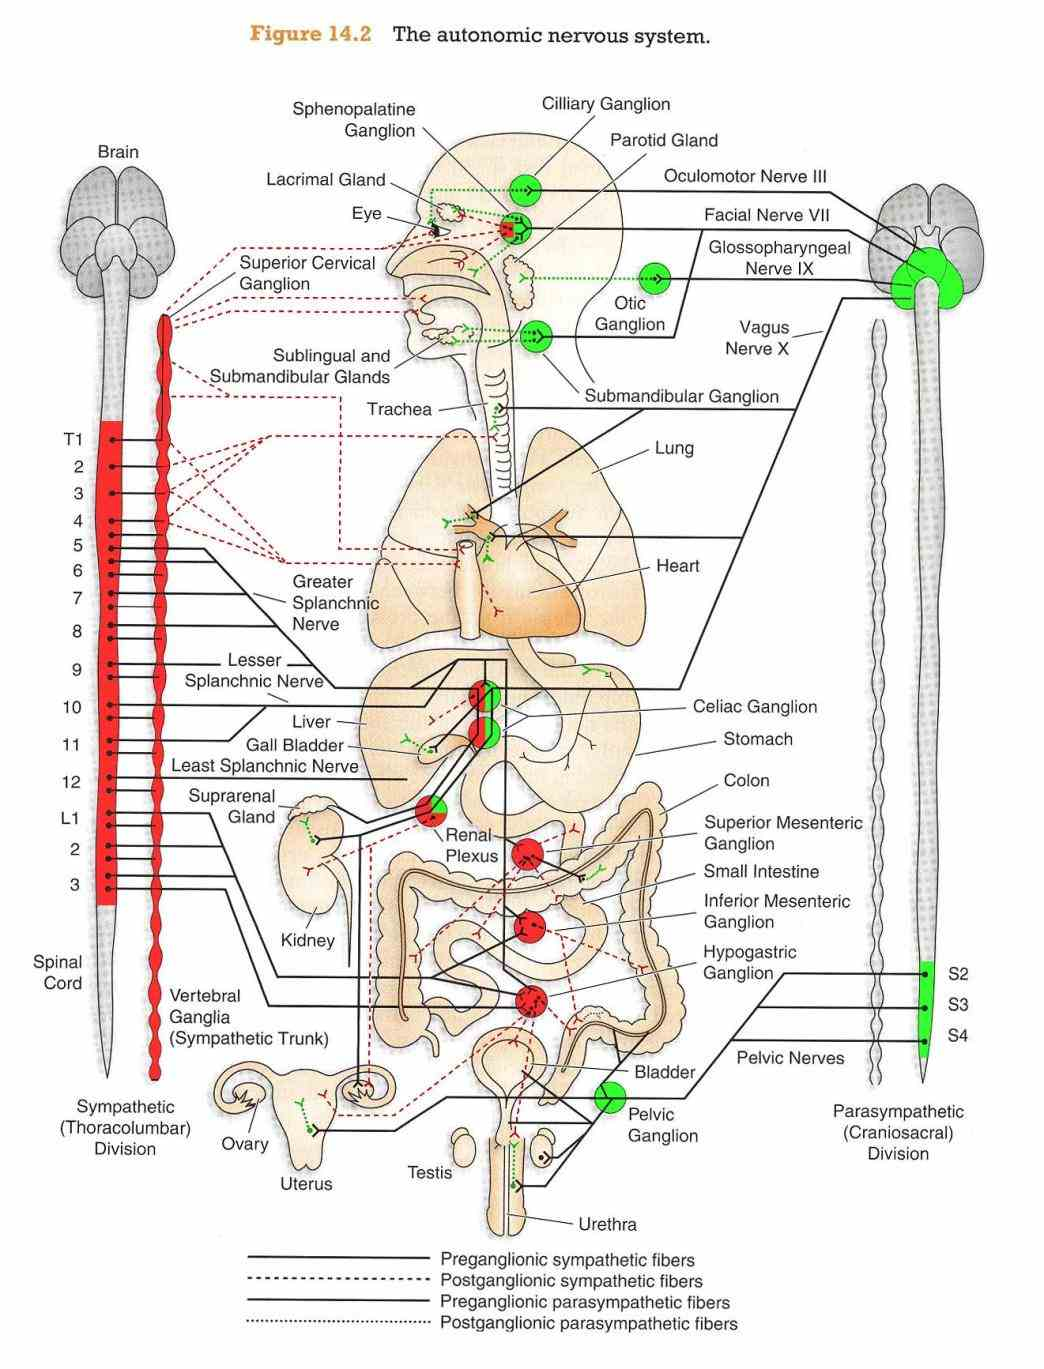 that  de Anatomy Autonomic Nervous System jul autonomic nervous system by dr manah chandra changmai at Anatomy Autonomic Nervous